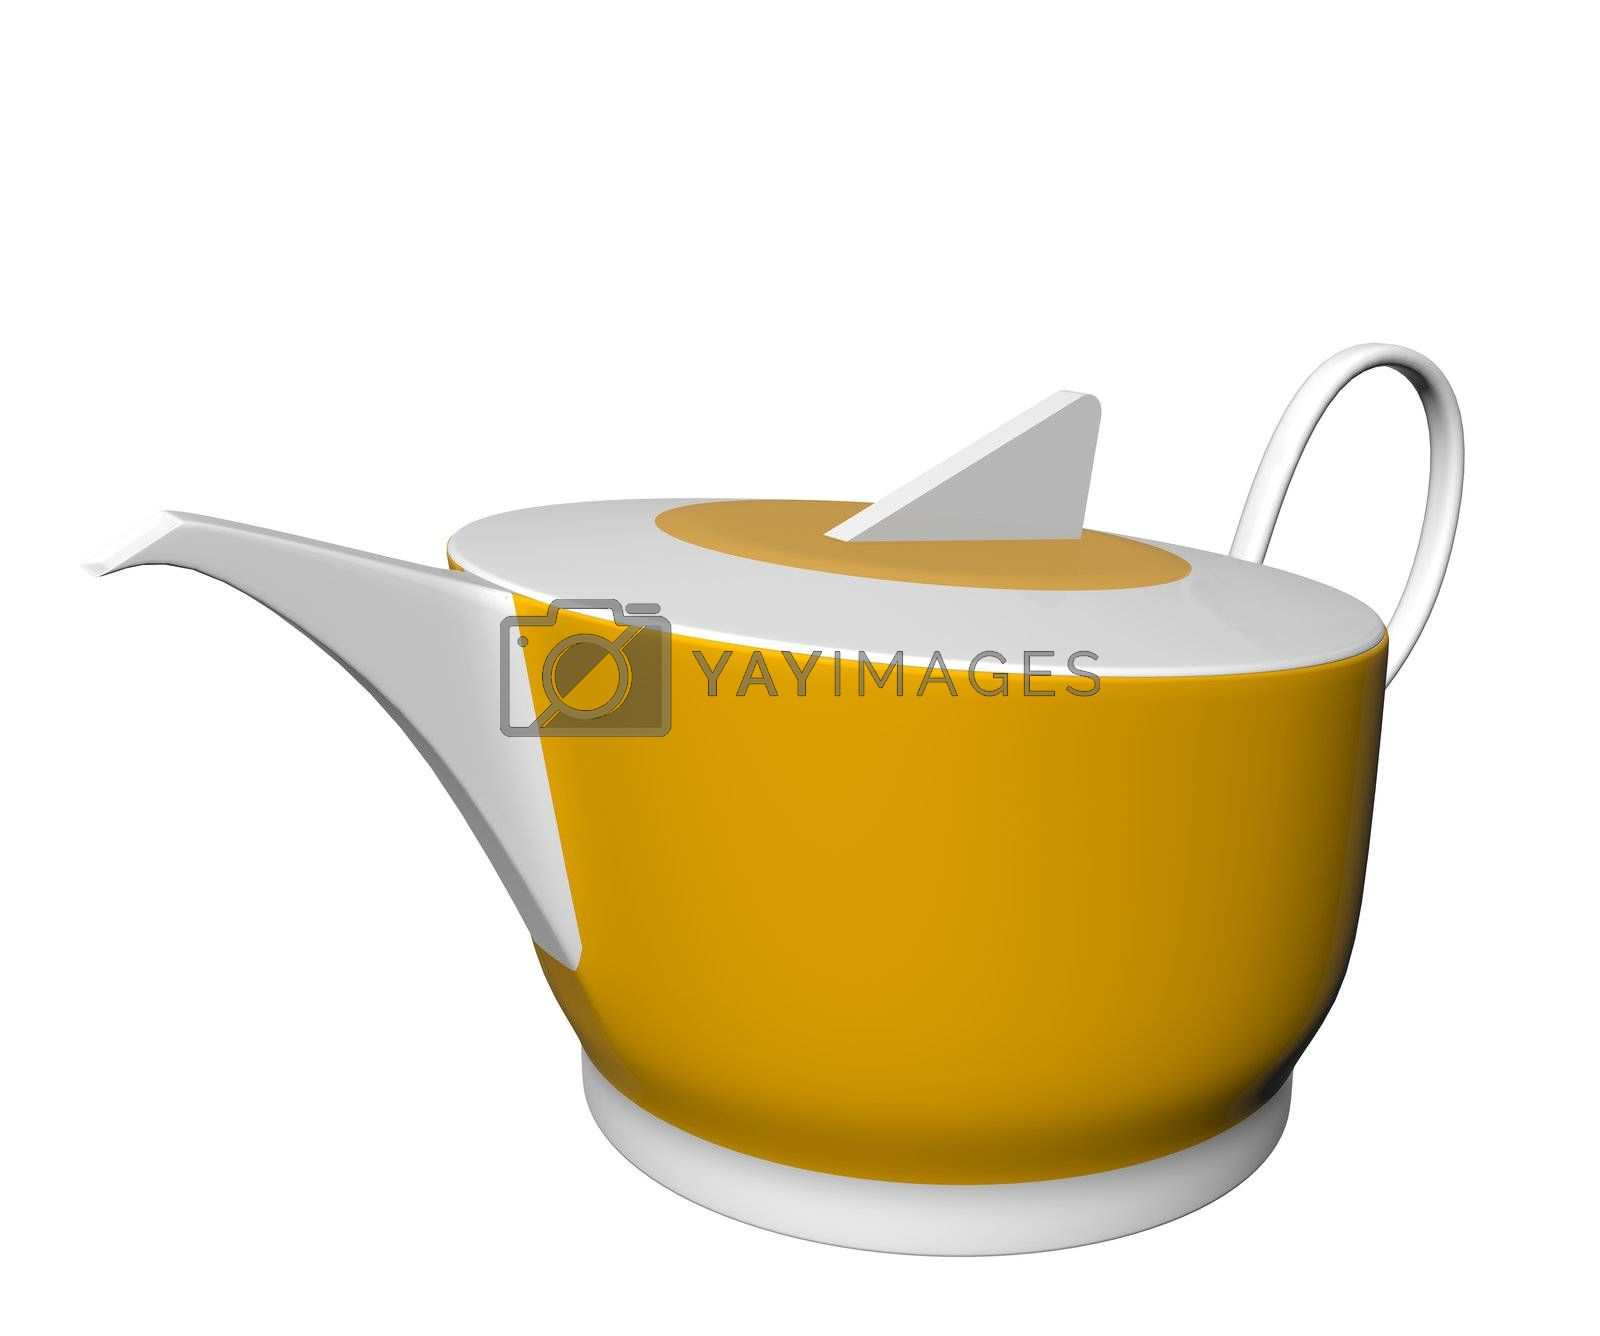 White and yellow ceramic tea pot, 3D illustration, isolated against a white background